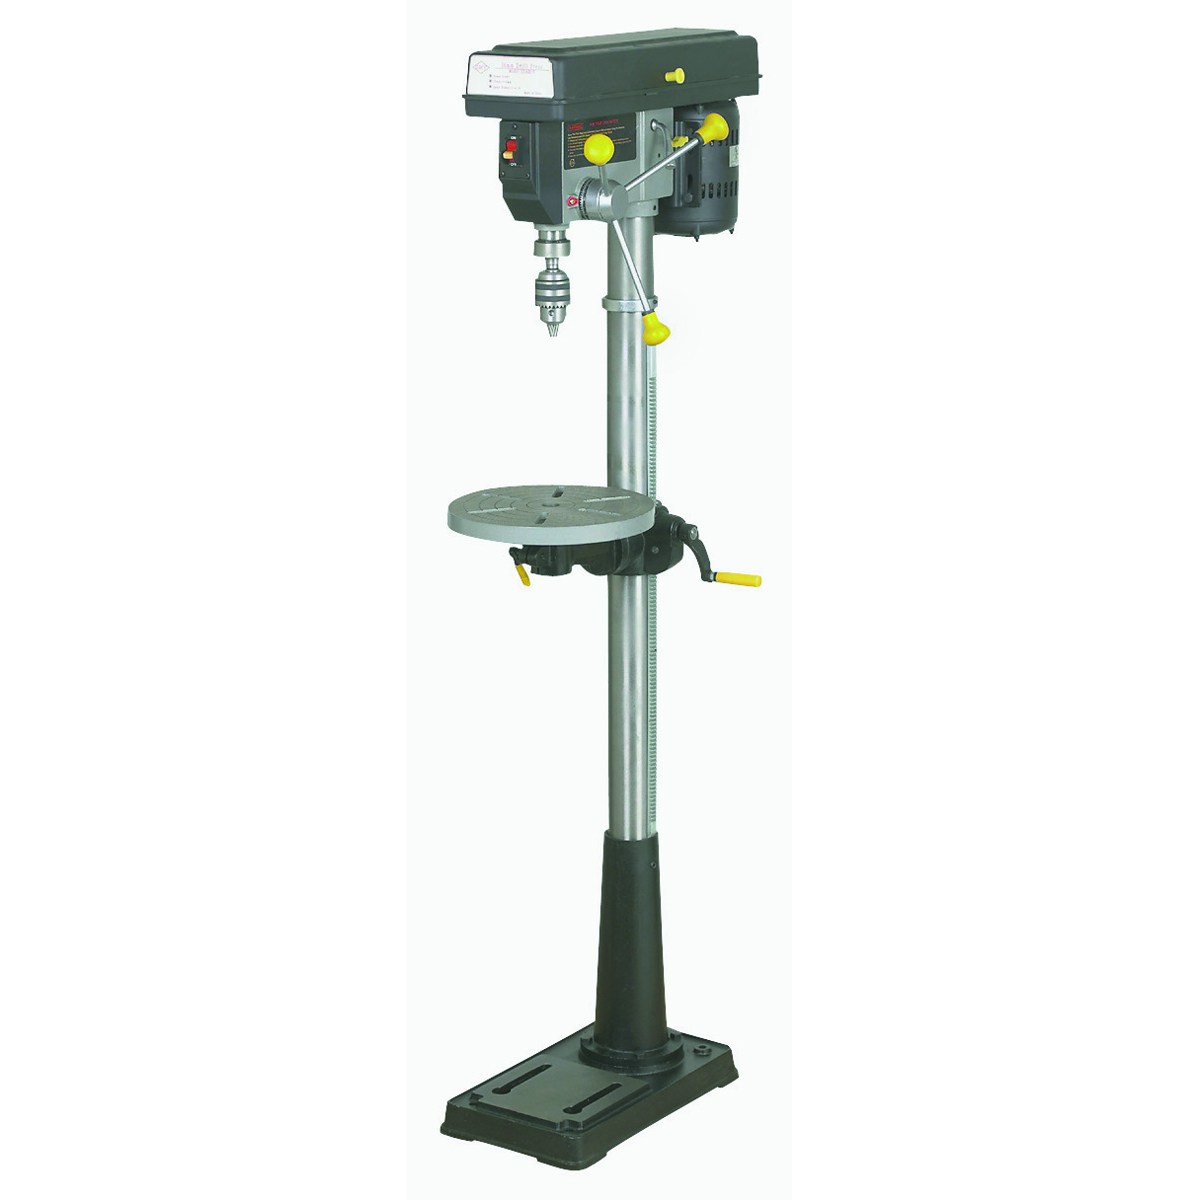 Cerrie burnell images frompo 1 for 16 speed floor drill press